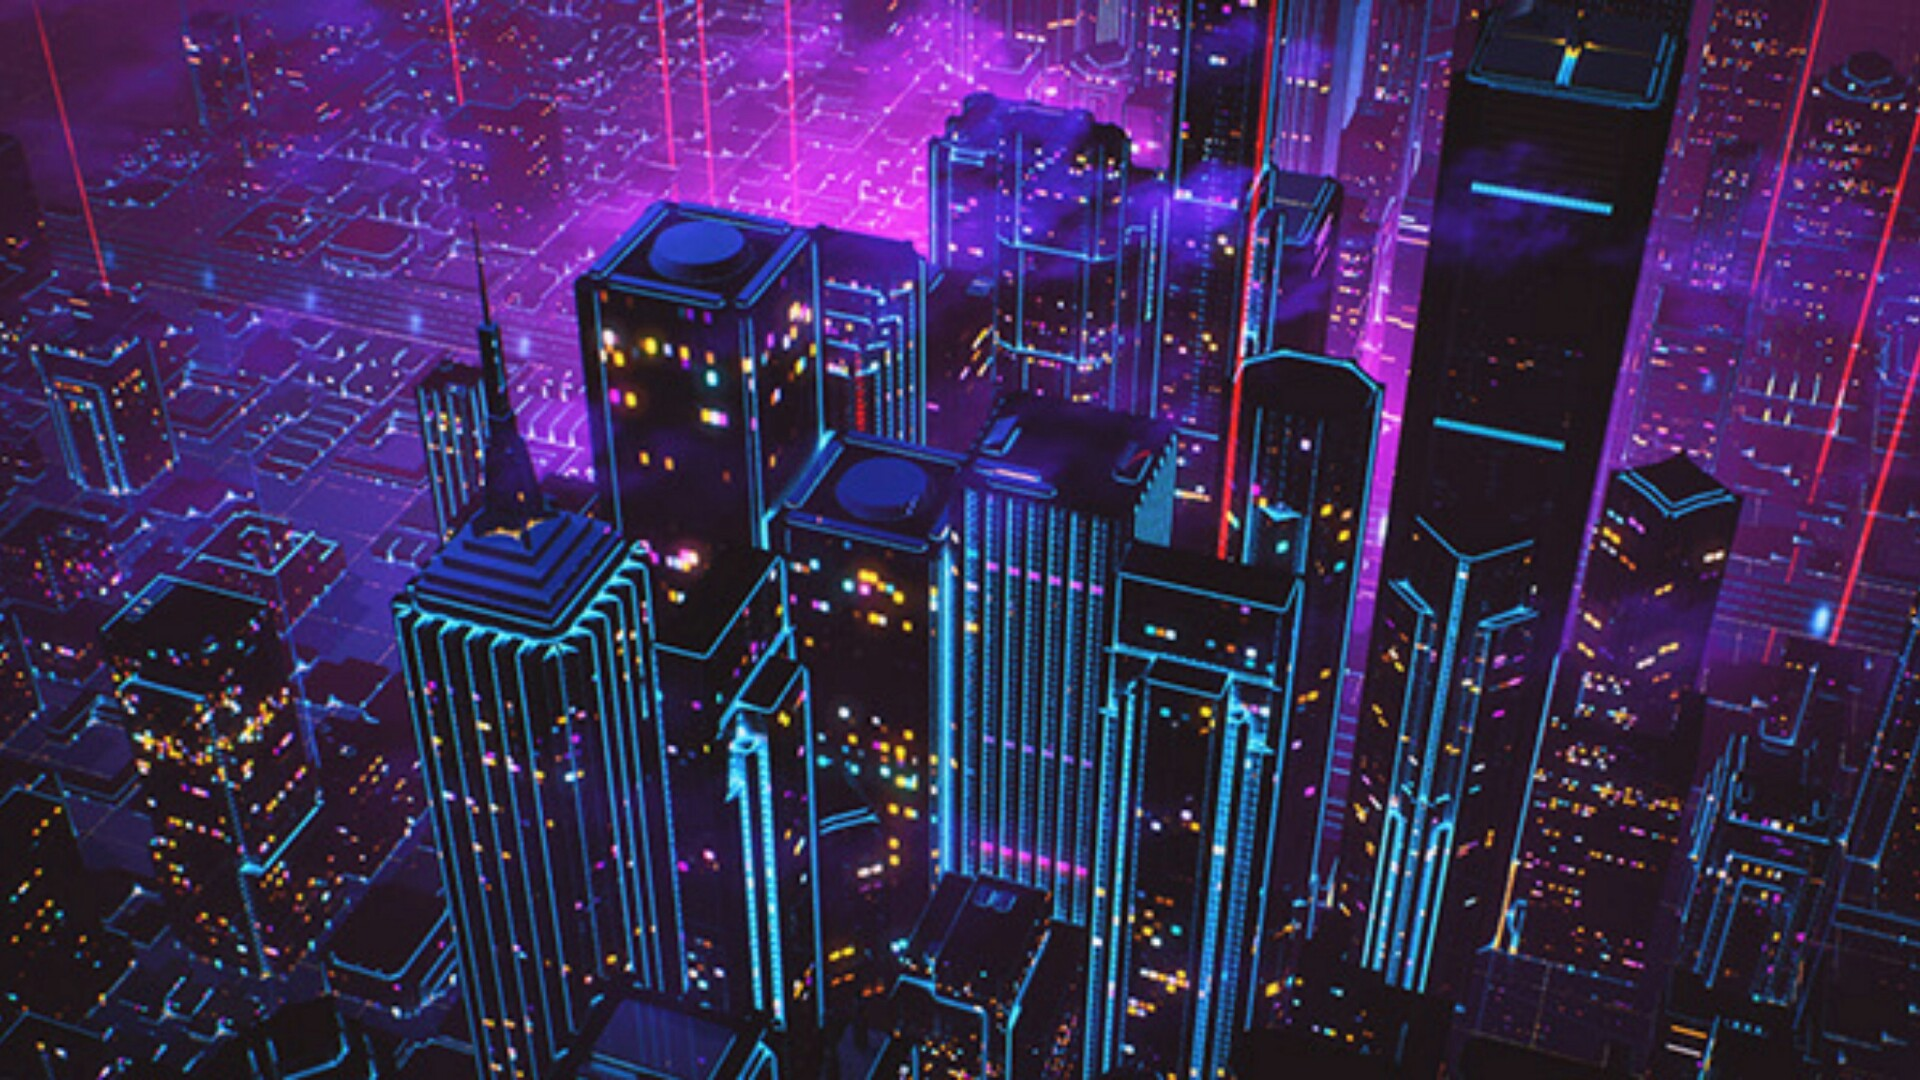 Neon Wallpapers Images Is Cool Wallpapers